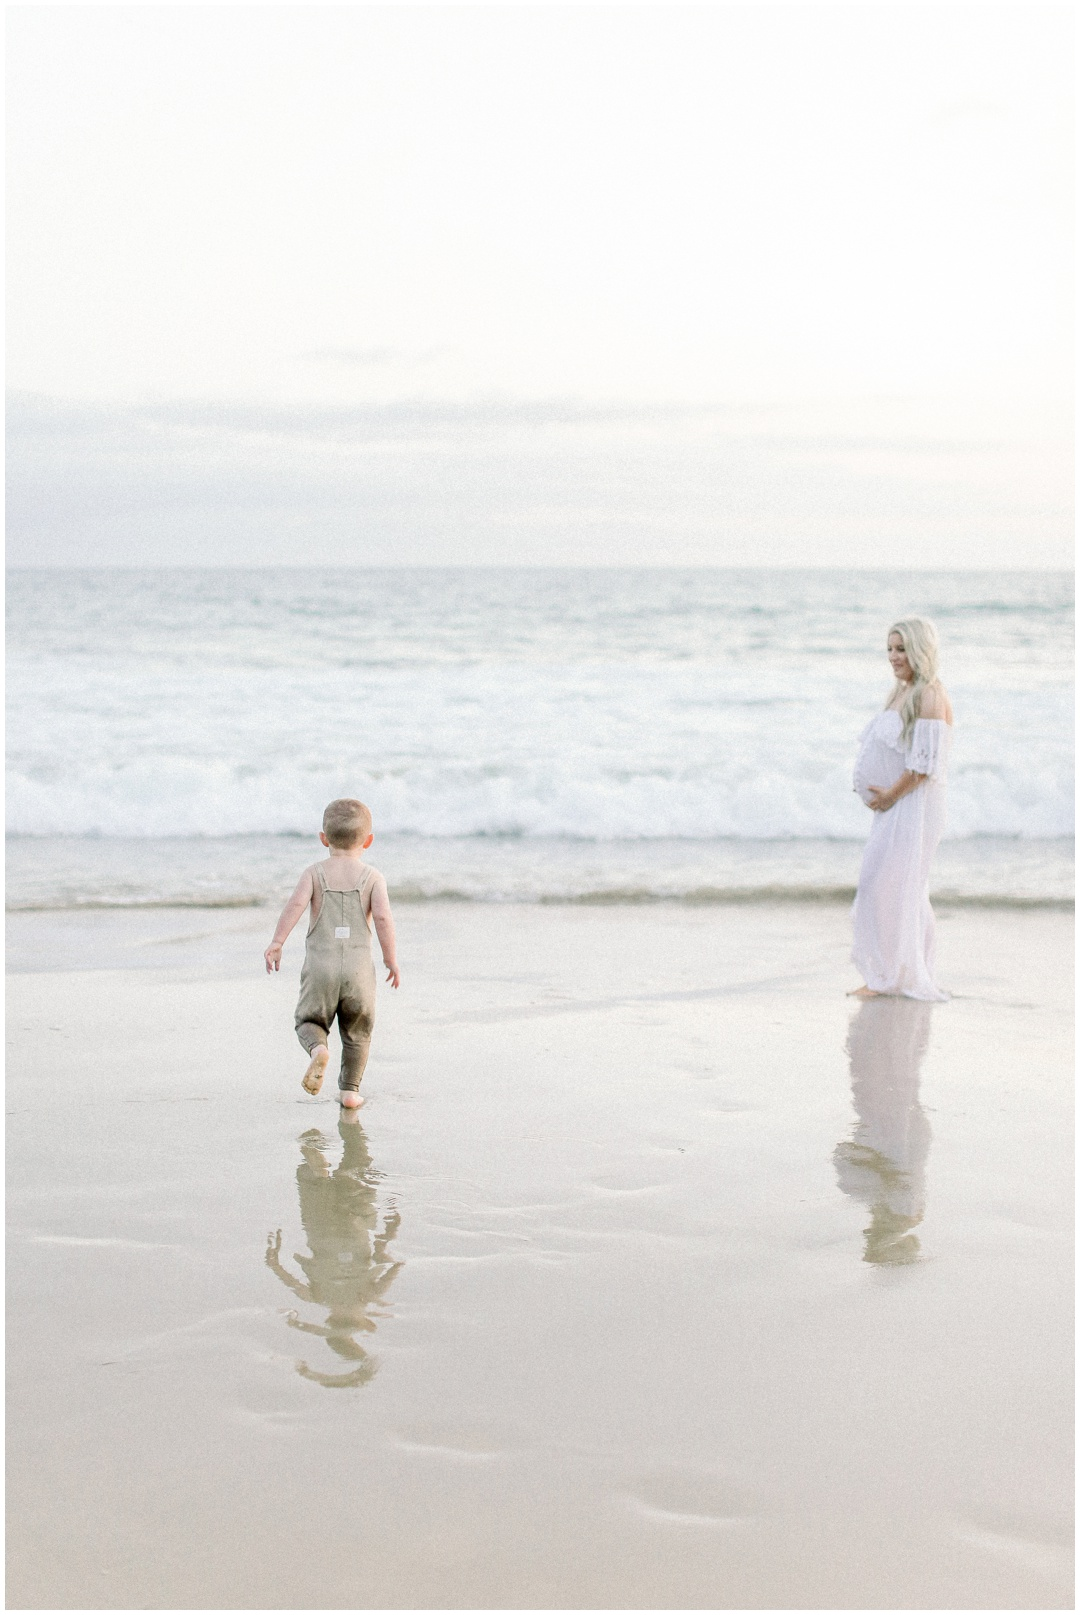 Newport_Beach_Newborn_Light_Airy_Natural_Photographer_Newport_Beach_Photographer_Orange_County_Family_Photographer_Cori_Kleckner_Photography_Newport_Beach_Photographer_Maternity_kole_calhoun56_kole_calhoun_Jennifer_Calhoun_Knox_Calhoun_3713.jpg